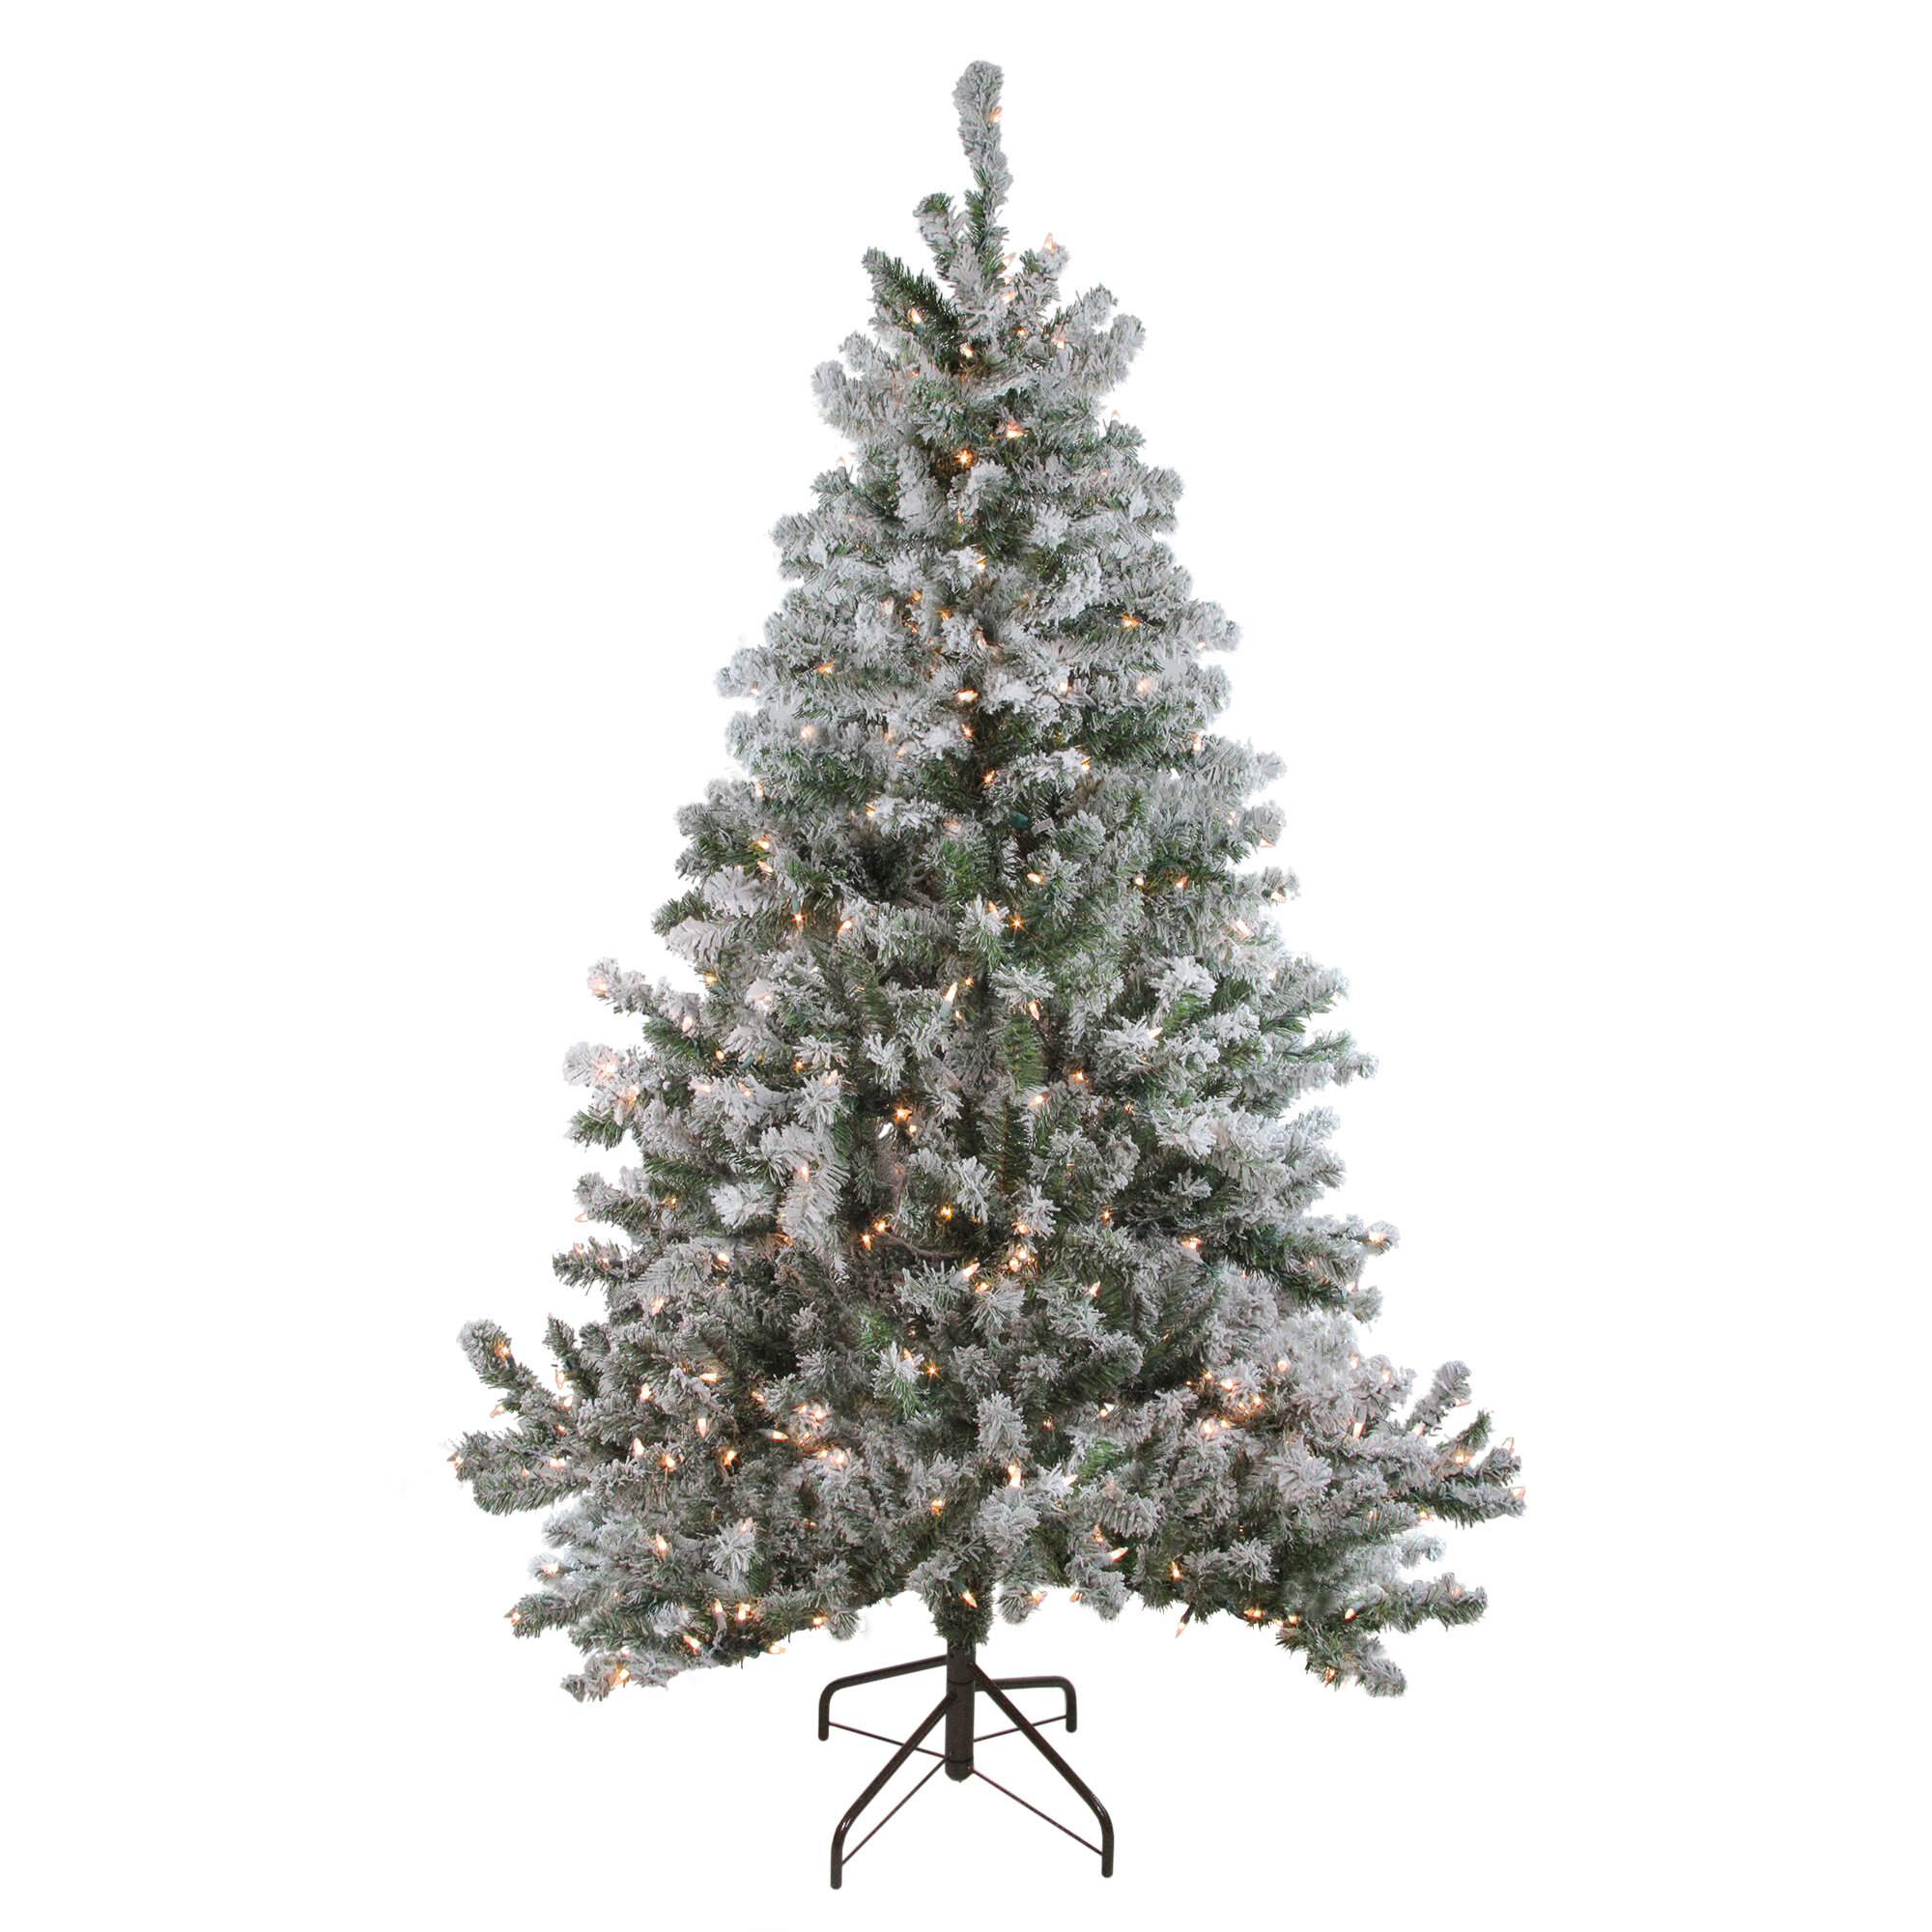 Artificial Christmas Tree Branches.Pre Lit Flocked Balsam Green Pine Artificial Christmas Tree With 500 Clear Lights